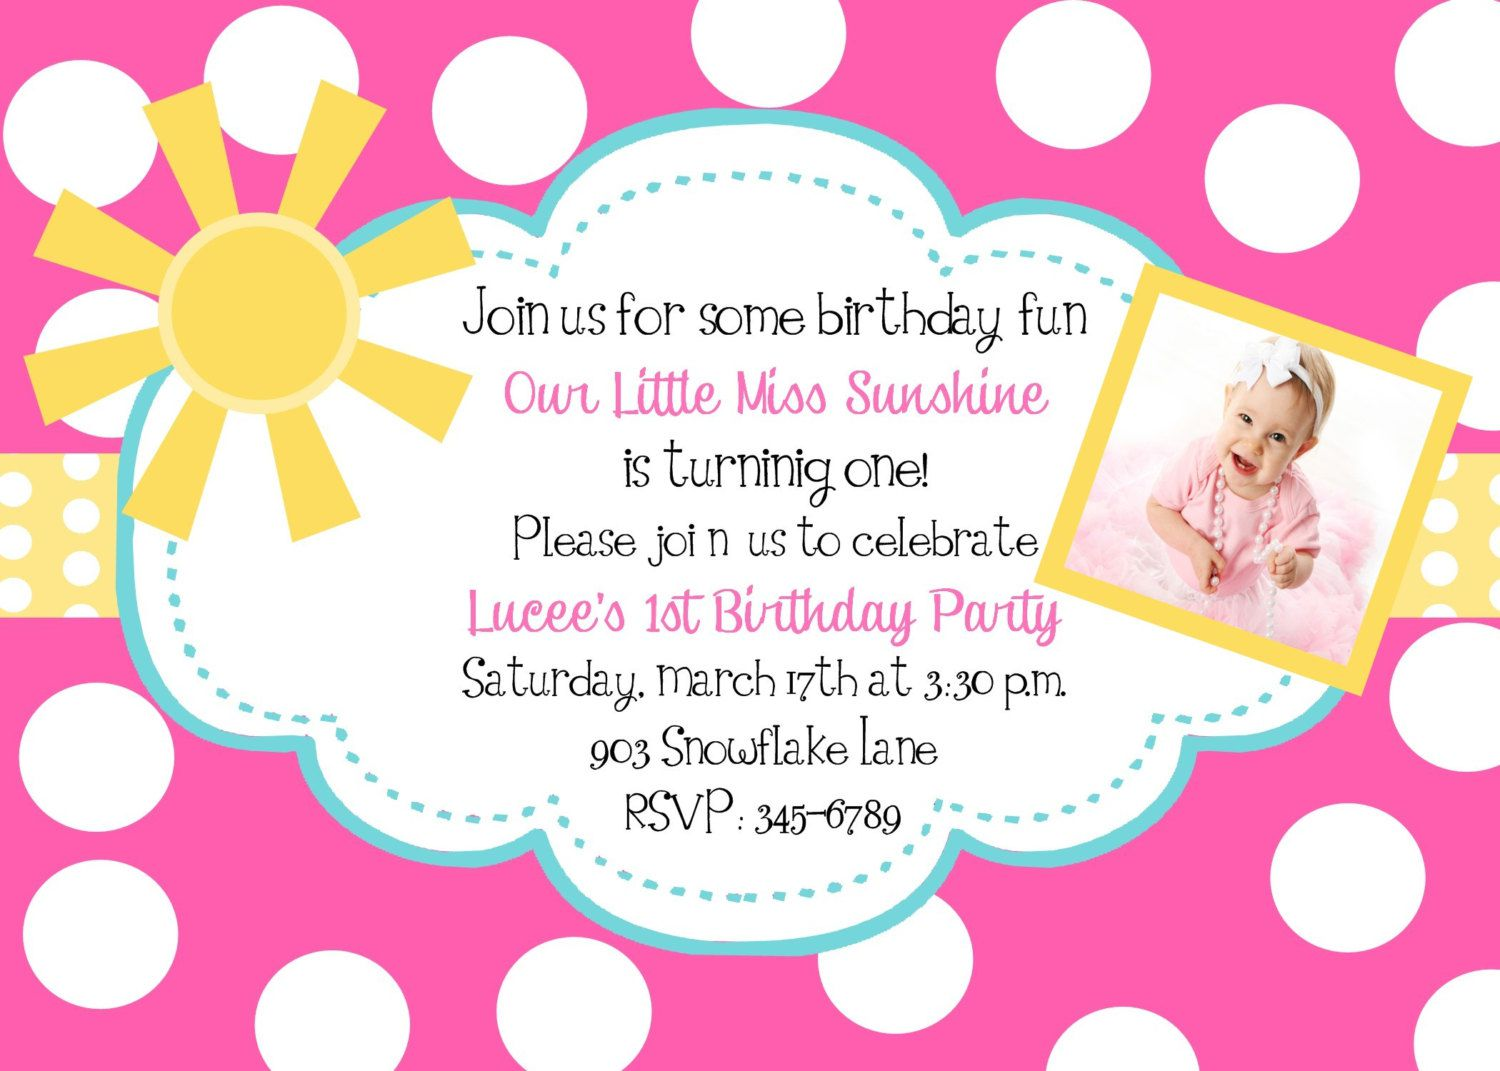 10 simple birthday party invitations design birthday party birthday party invitation wording filmwisefo Gallery